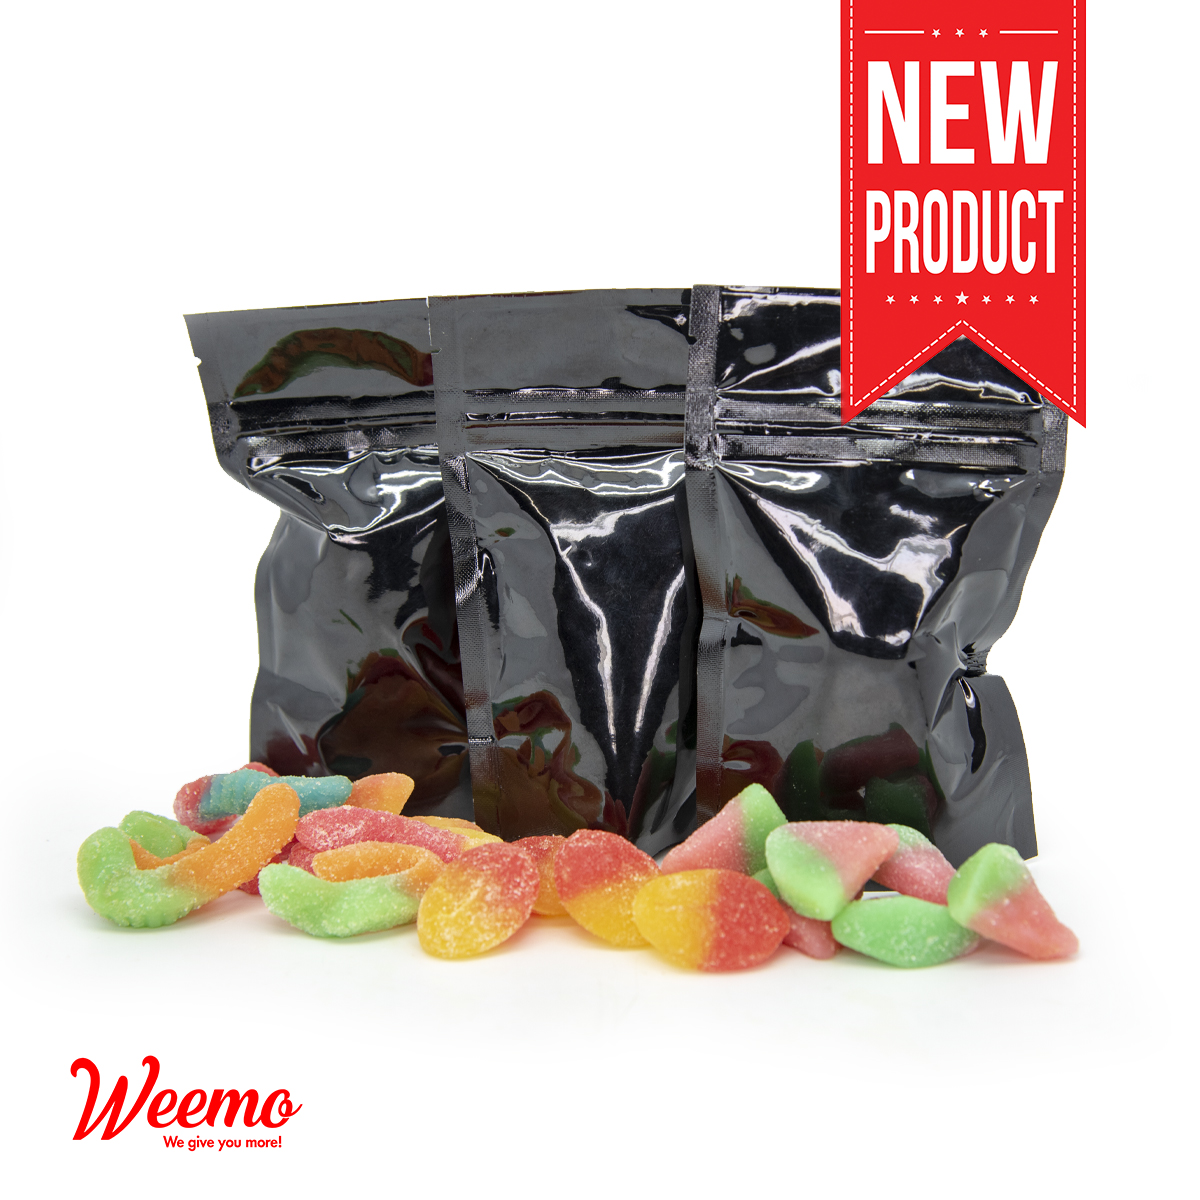 Medicated Gummies 500mg by Weemo - Image © 2019 Weemo. All Rights Reserved.